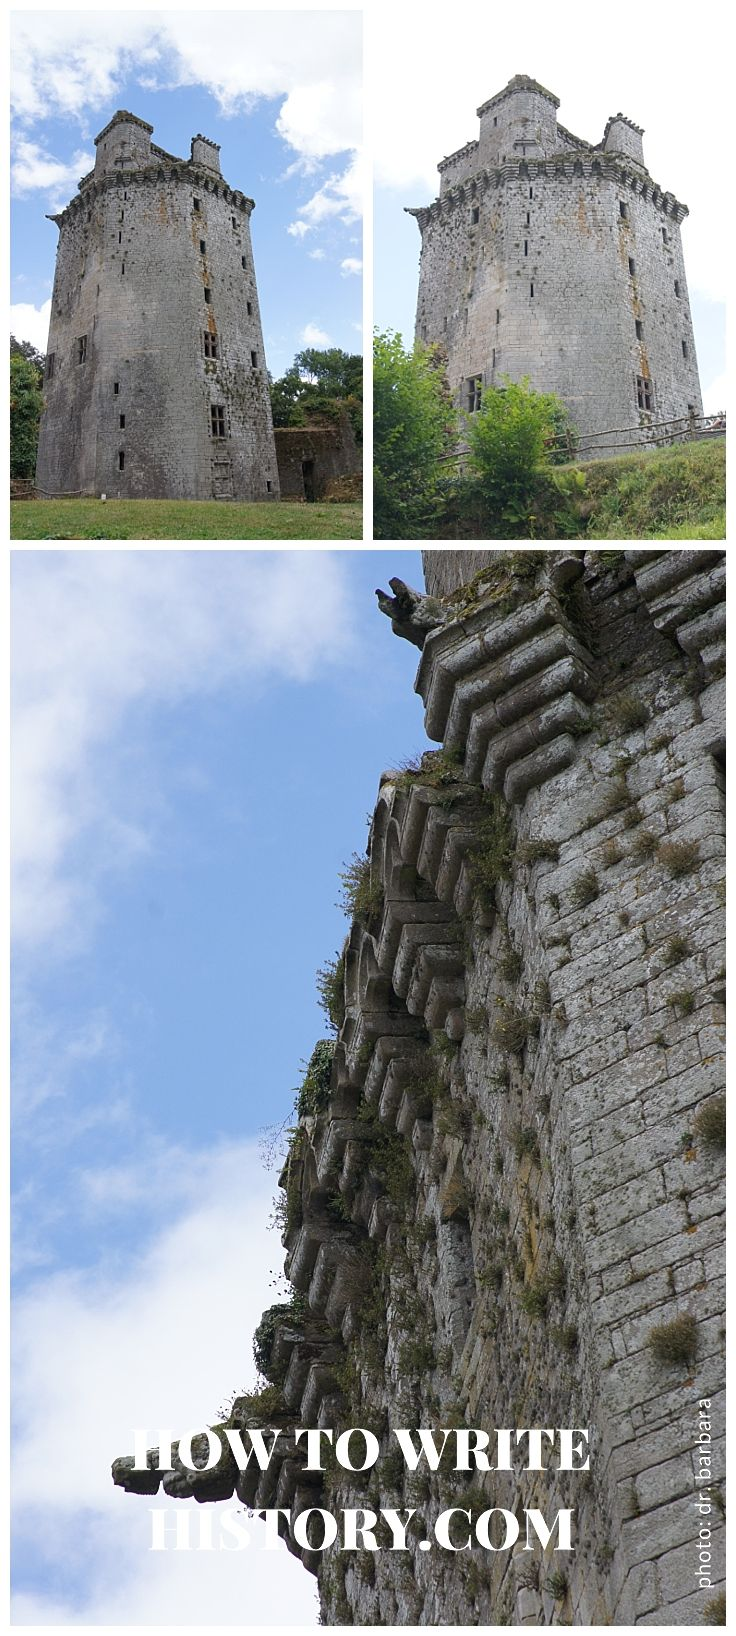 Bretagne, France: Exploring Medieval Castles * | handpicked, historical material for authors who want to write about the past.  Resources for Writers and Authors who need historical resources for writing historical fiction. Curated by historical consultant Dr. Barbara Ellermeier.